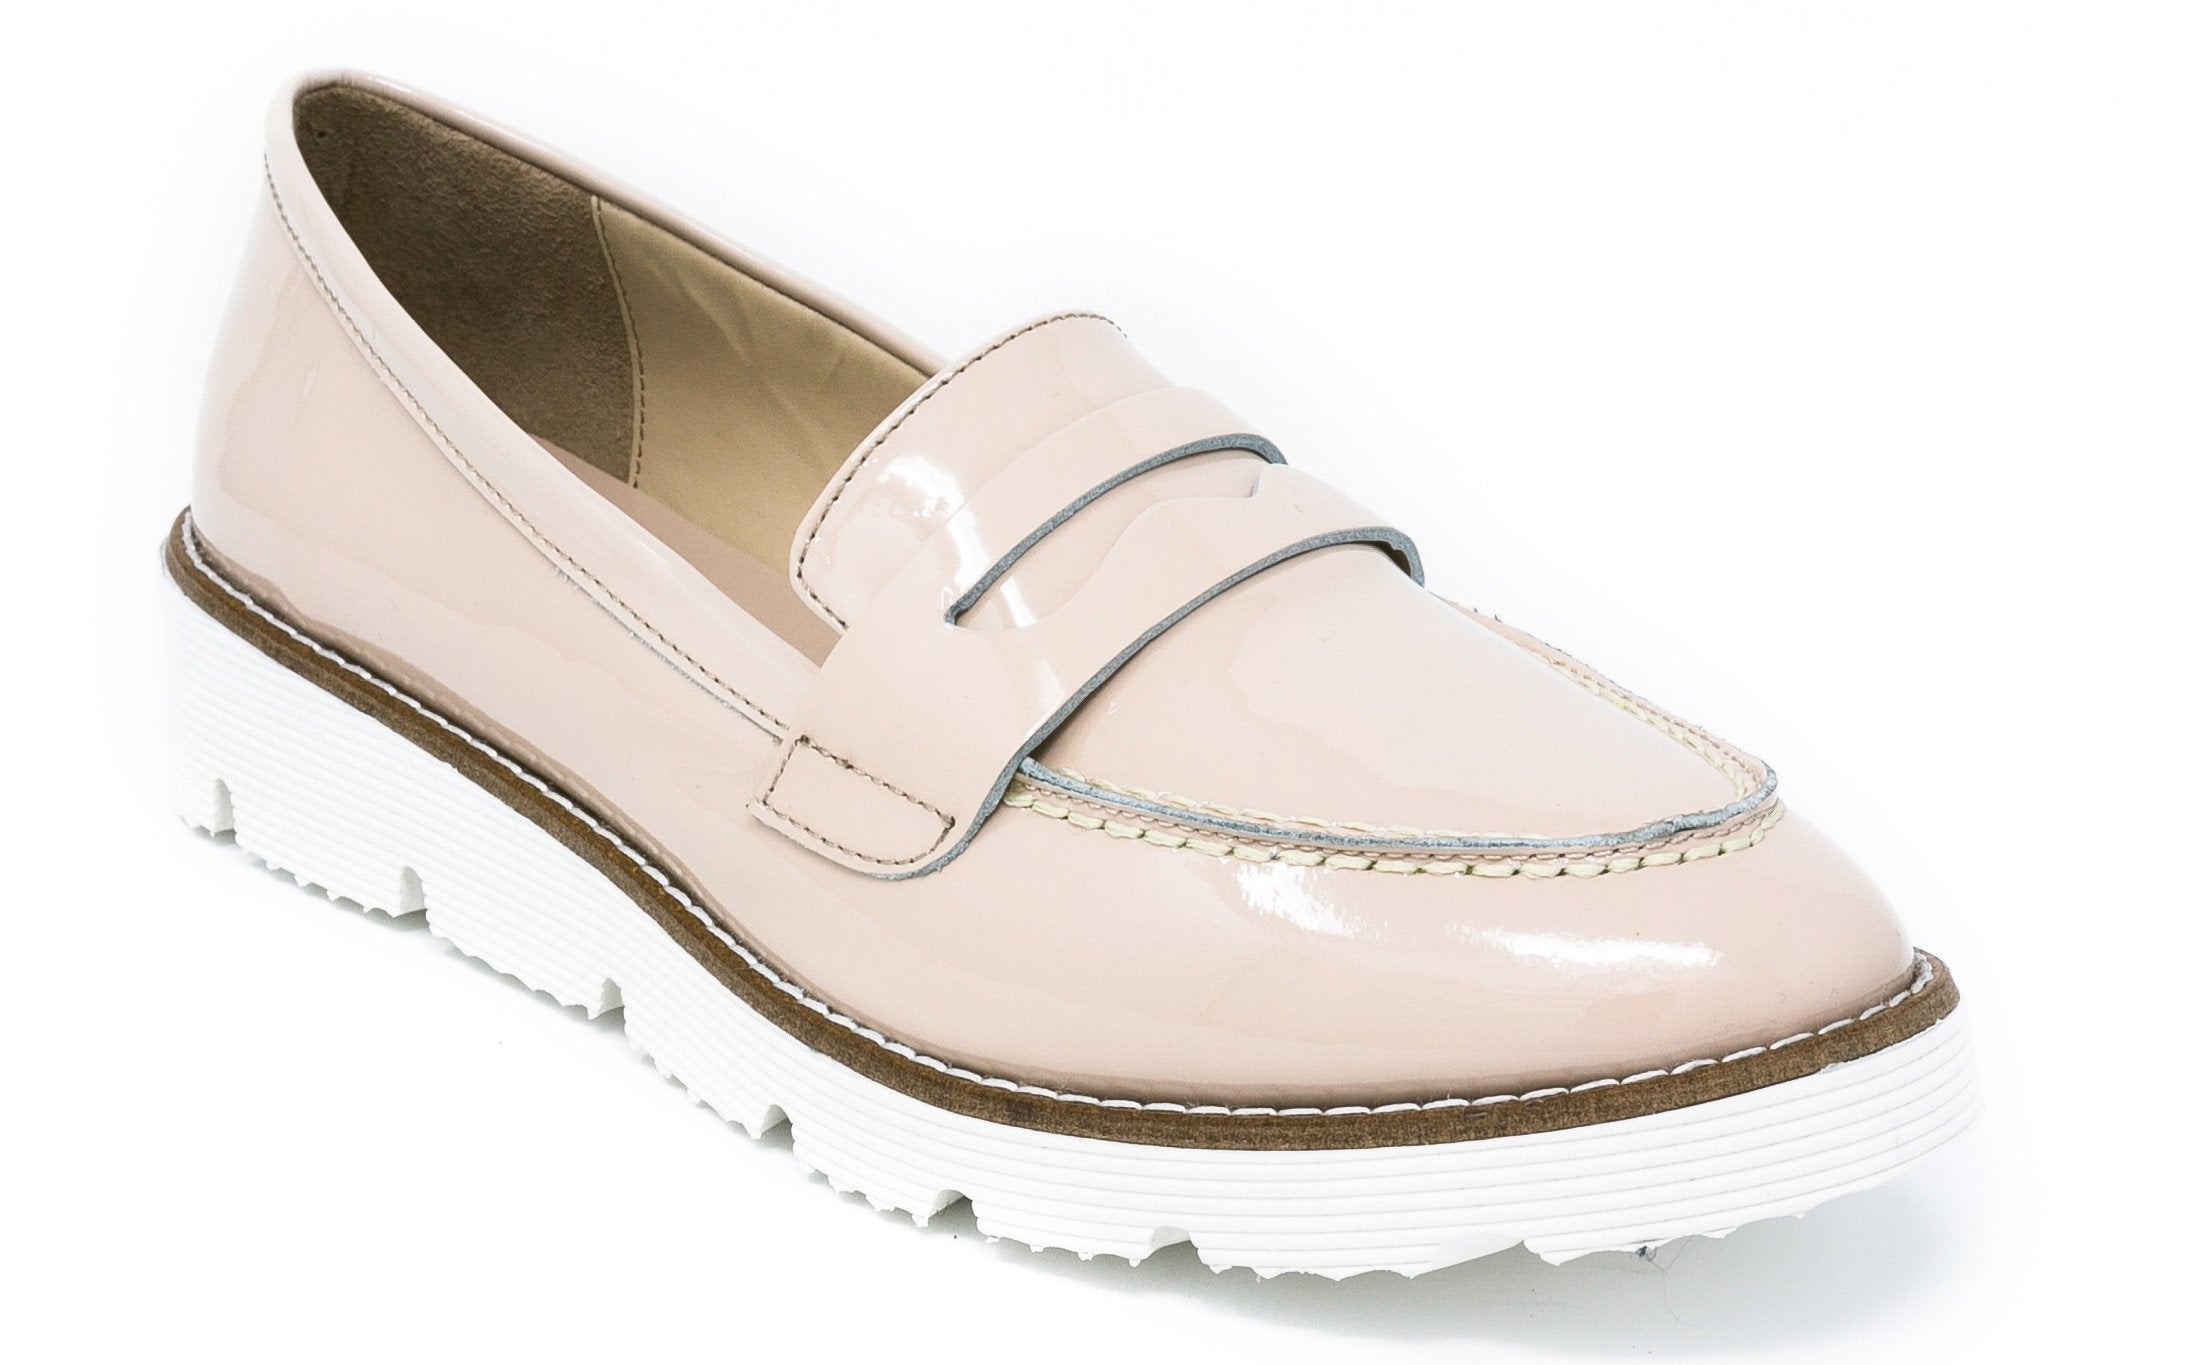 Val Leather Shoes - LoveSylvester